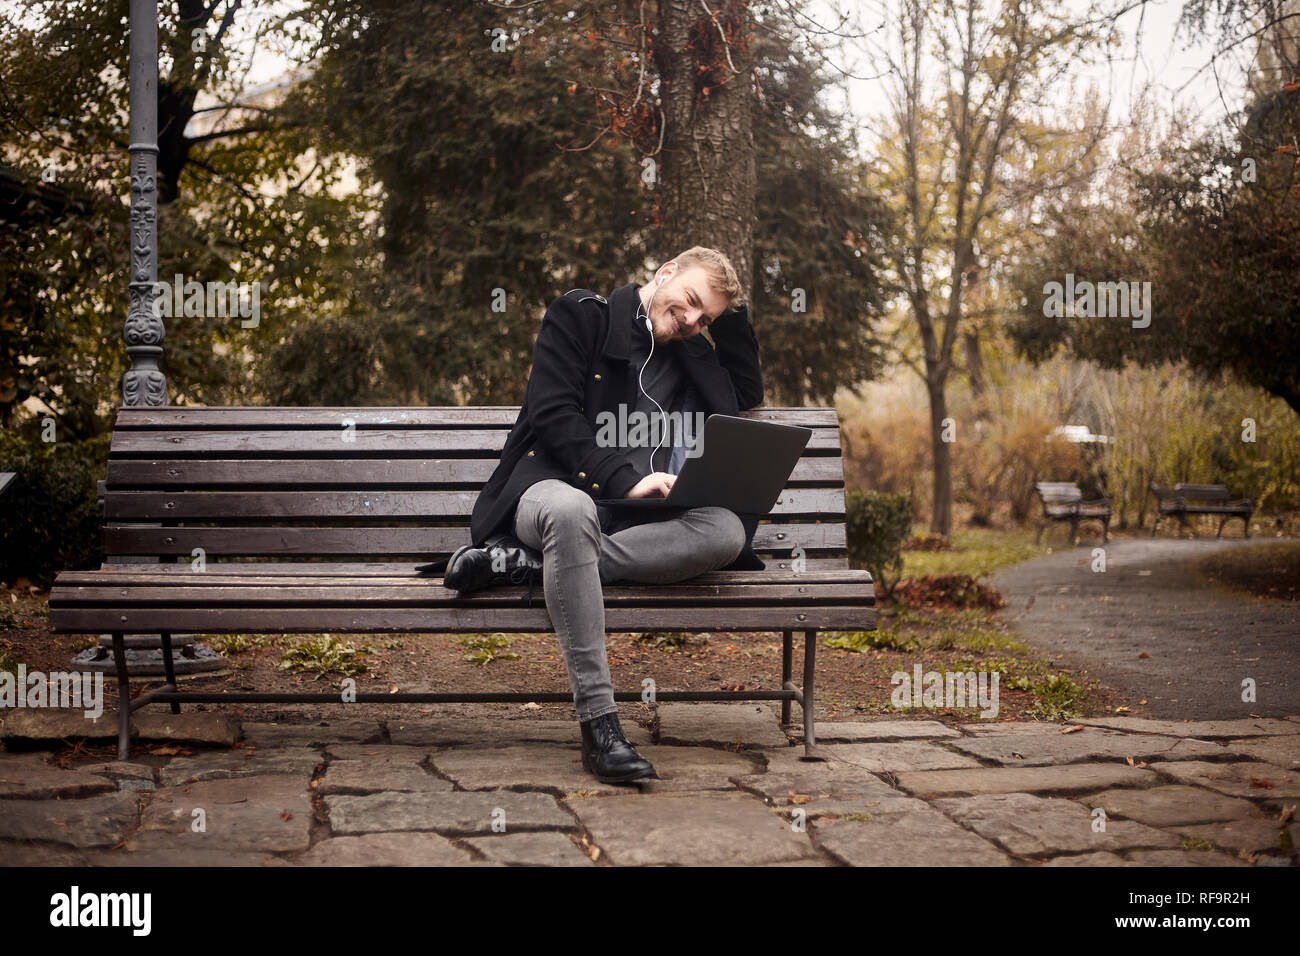 one young smiling and happy man, sitting on bench in public park,  using laptop, looking to computer. Formal wear or smart casual. Full length shot. - Stock Image